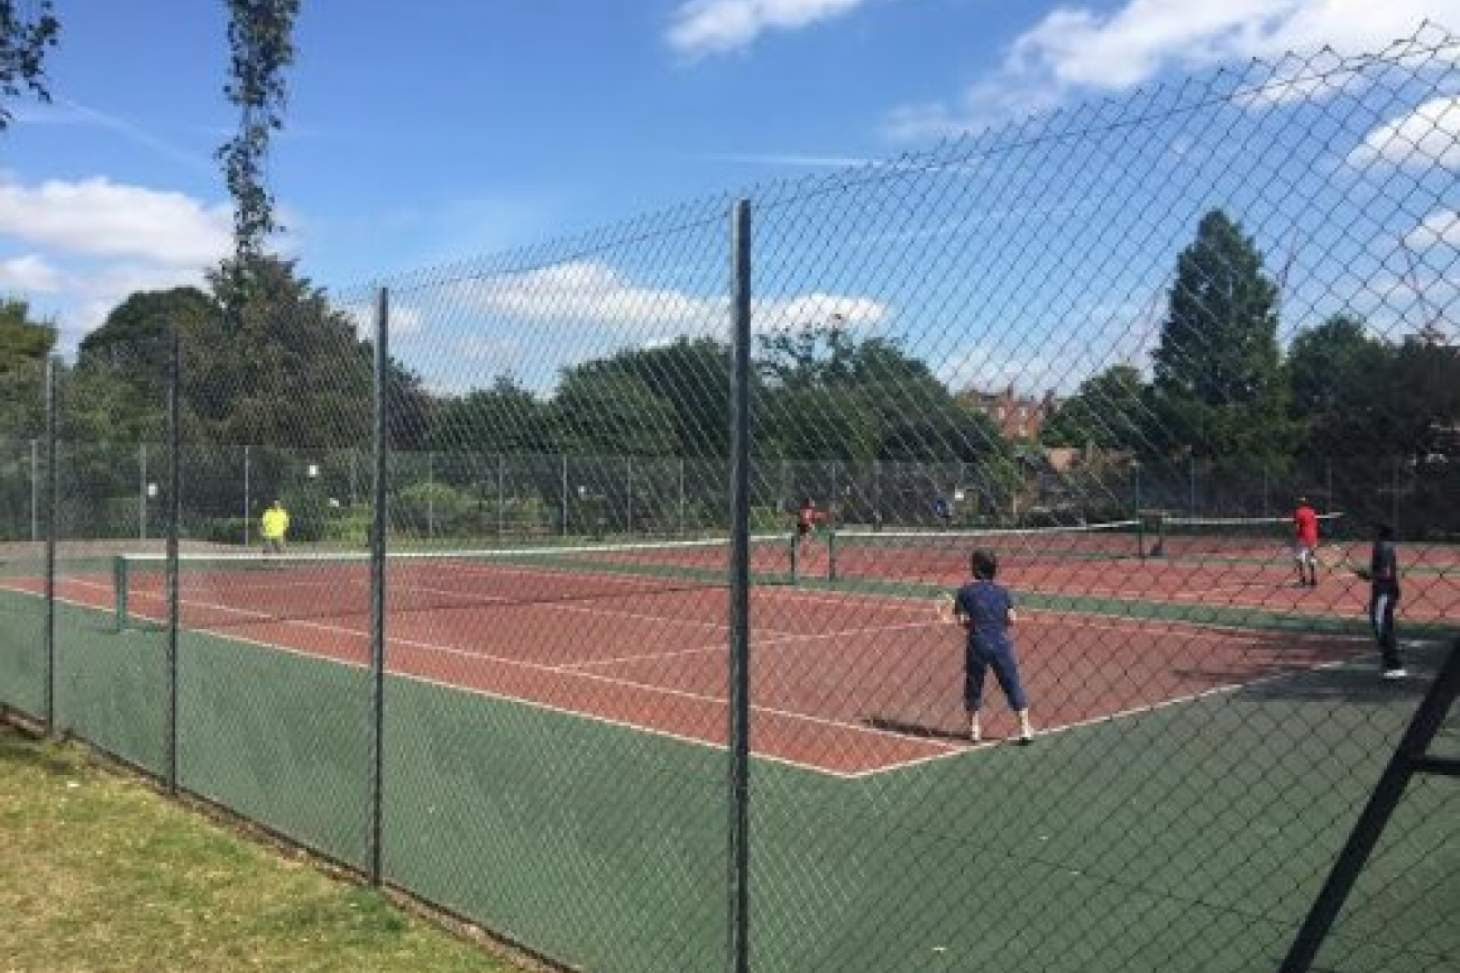 Kilburn Grange Outdoor | Hard (macadam) tennis court